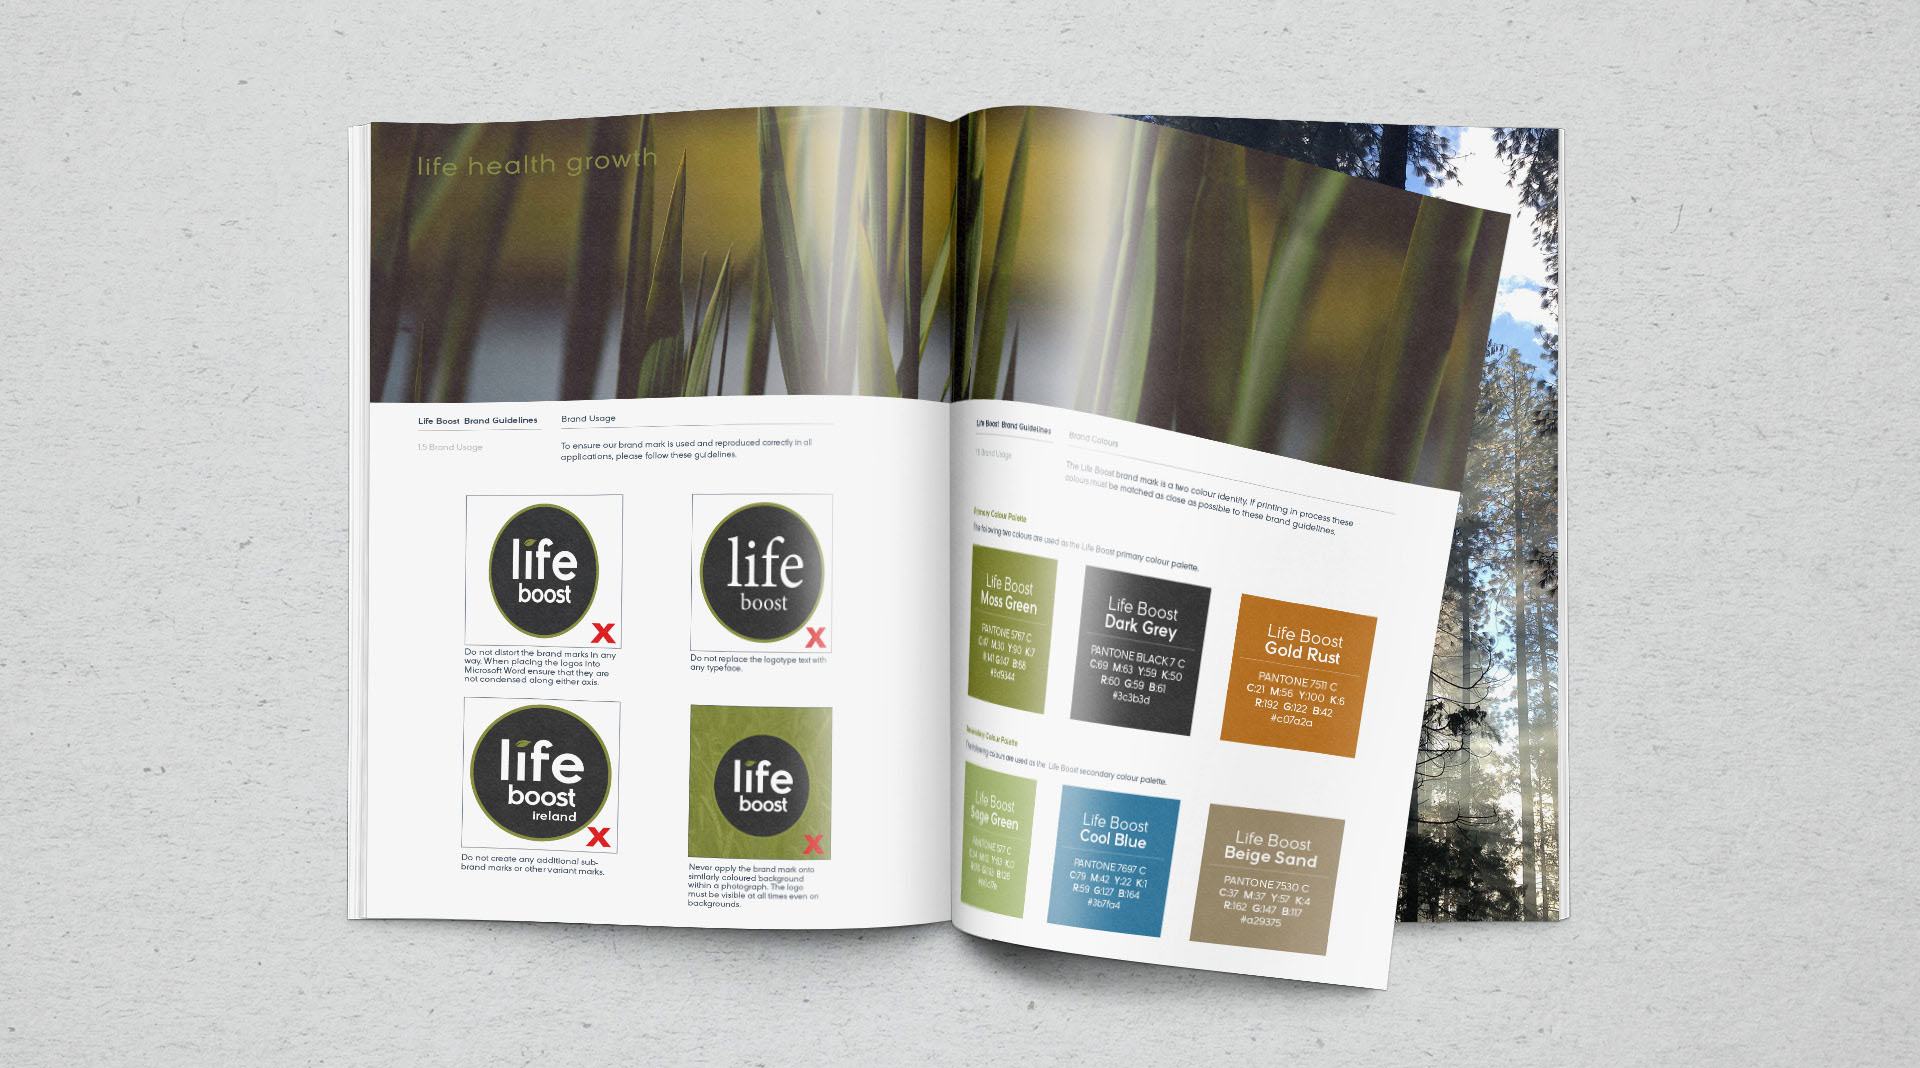 Life boost branding toolkit for vitamins and supplements.